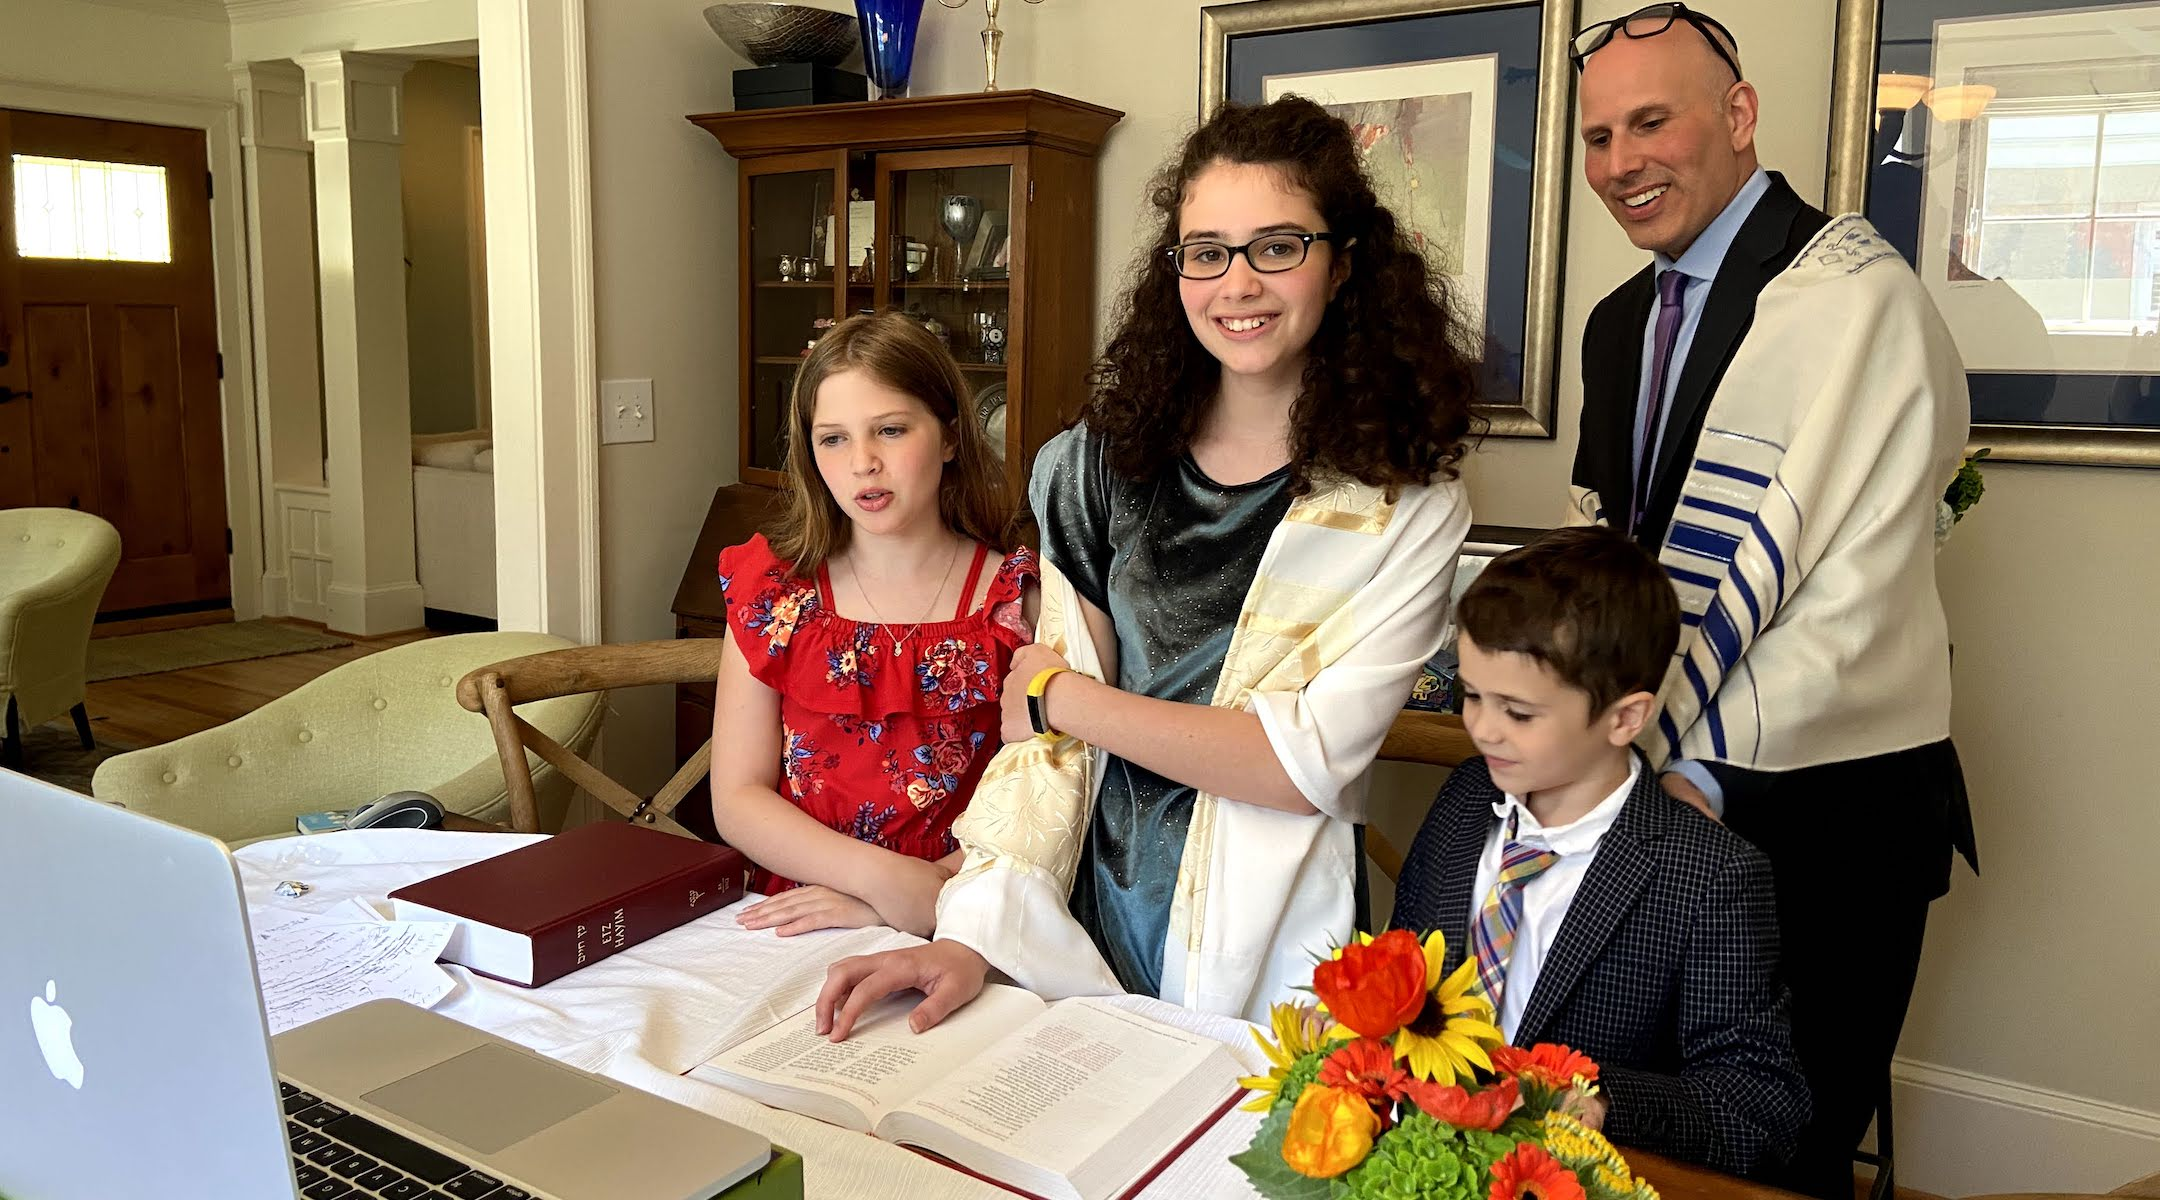 Lila Duke celebrated her bat mitzvah at home as more than 100 guests tuned in on Zoom. (Courtesy of the Duke family/via JTA)